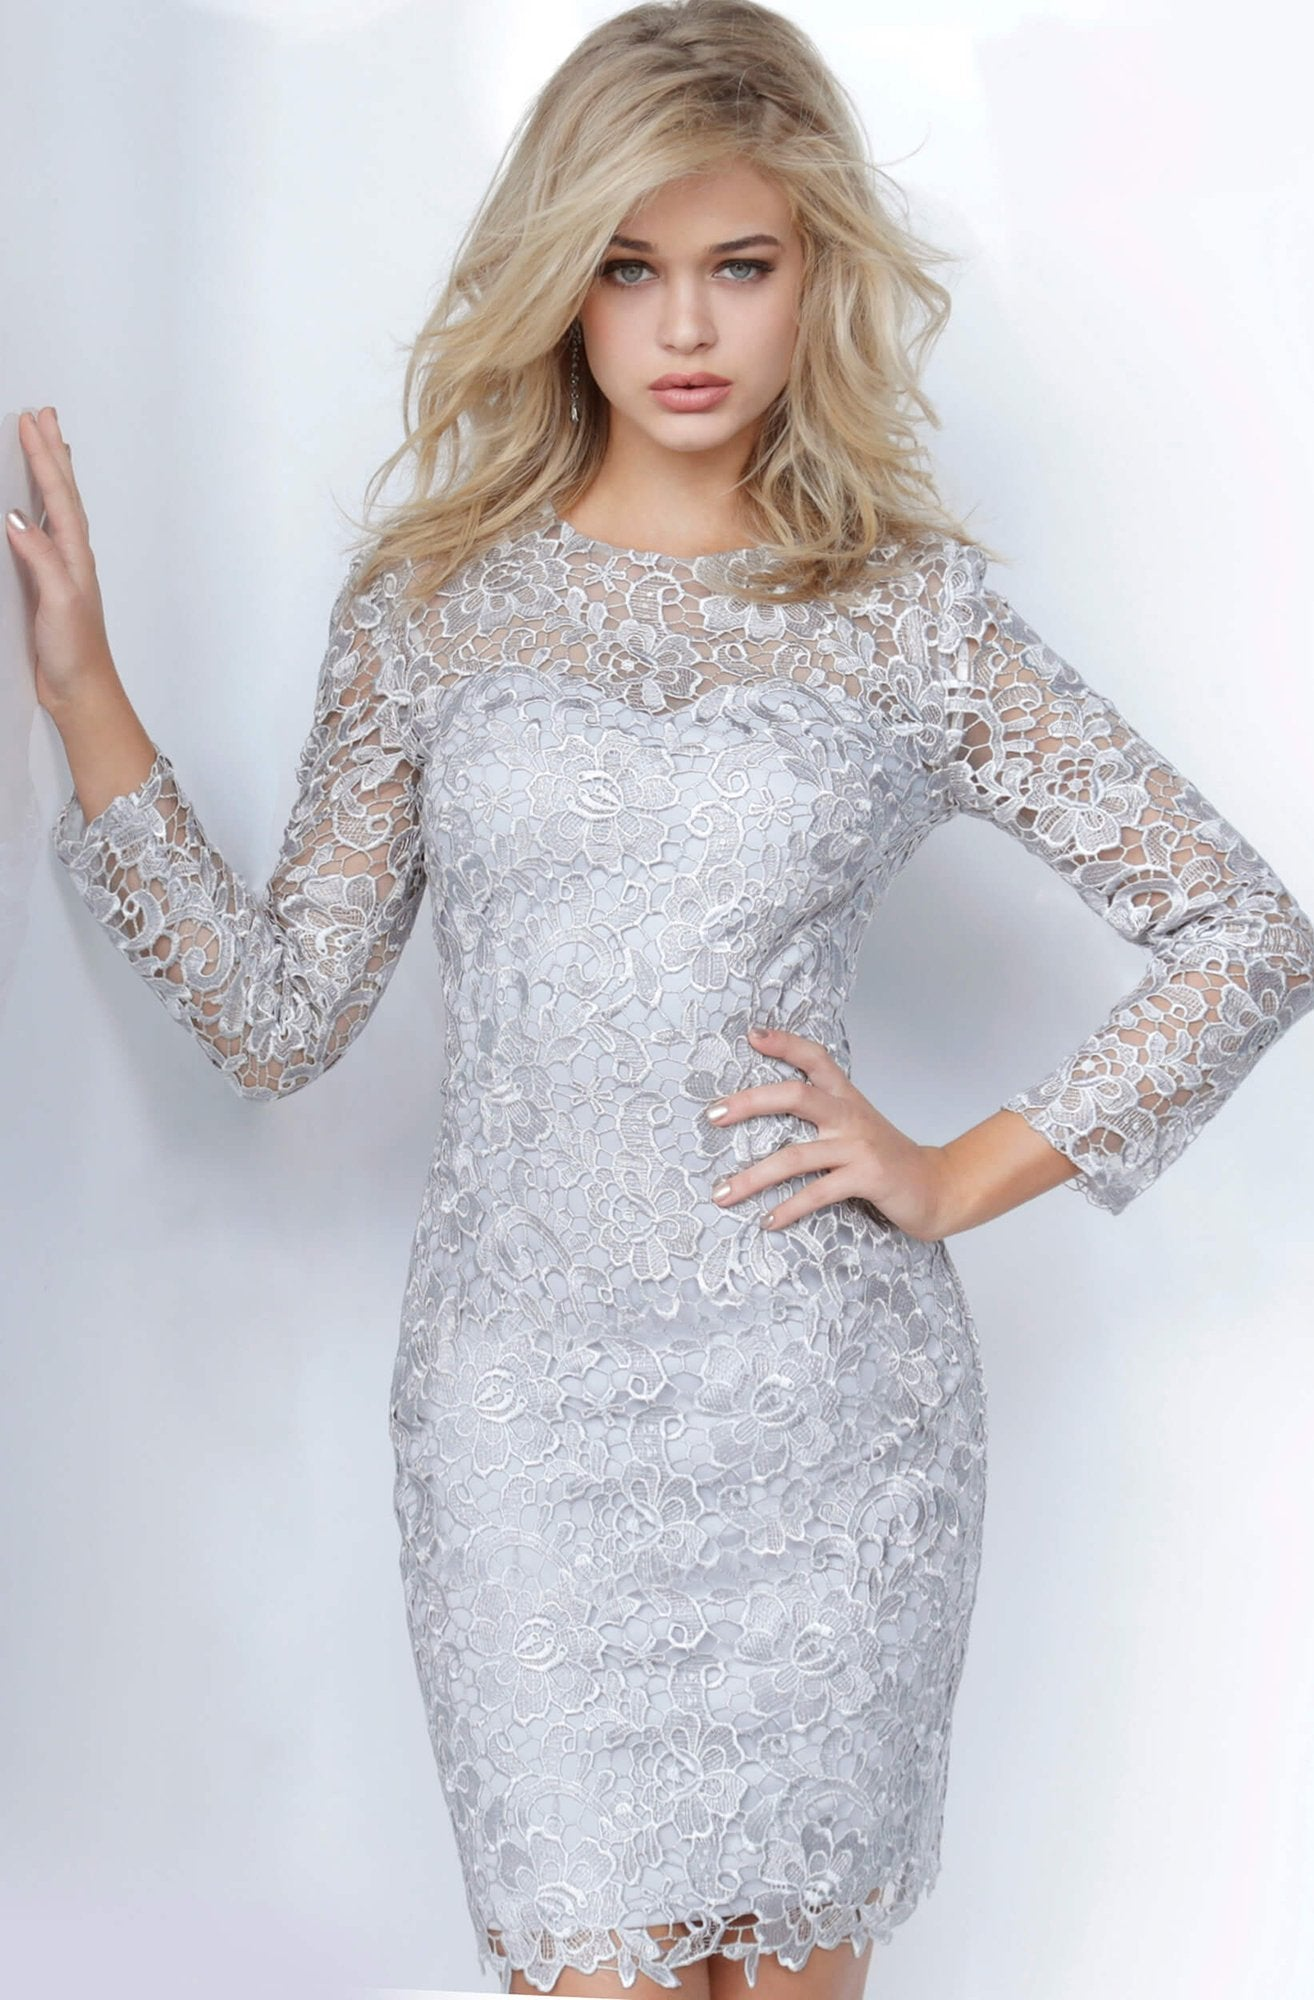 Jovani - Long Sleeve Jewel Neck Fitted Lace Dress JVN3217SC In Gray and Silver